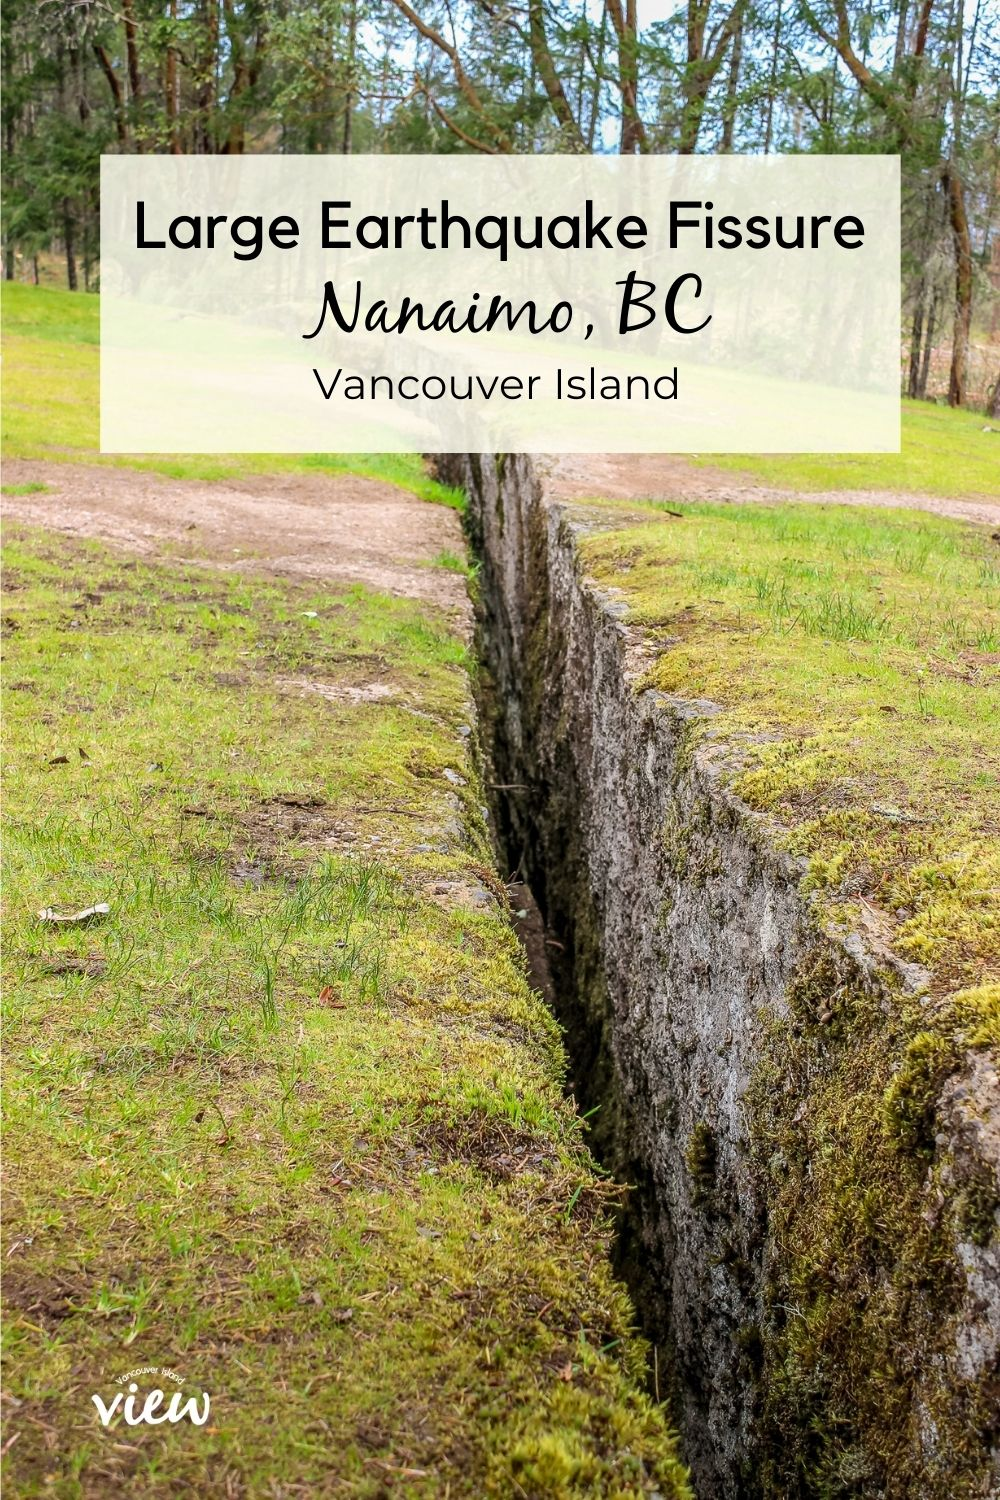 The Abyss in Nanaimo is a large earthquake fissure one can view. Vancouver Island View